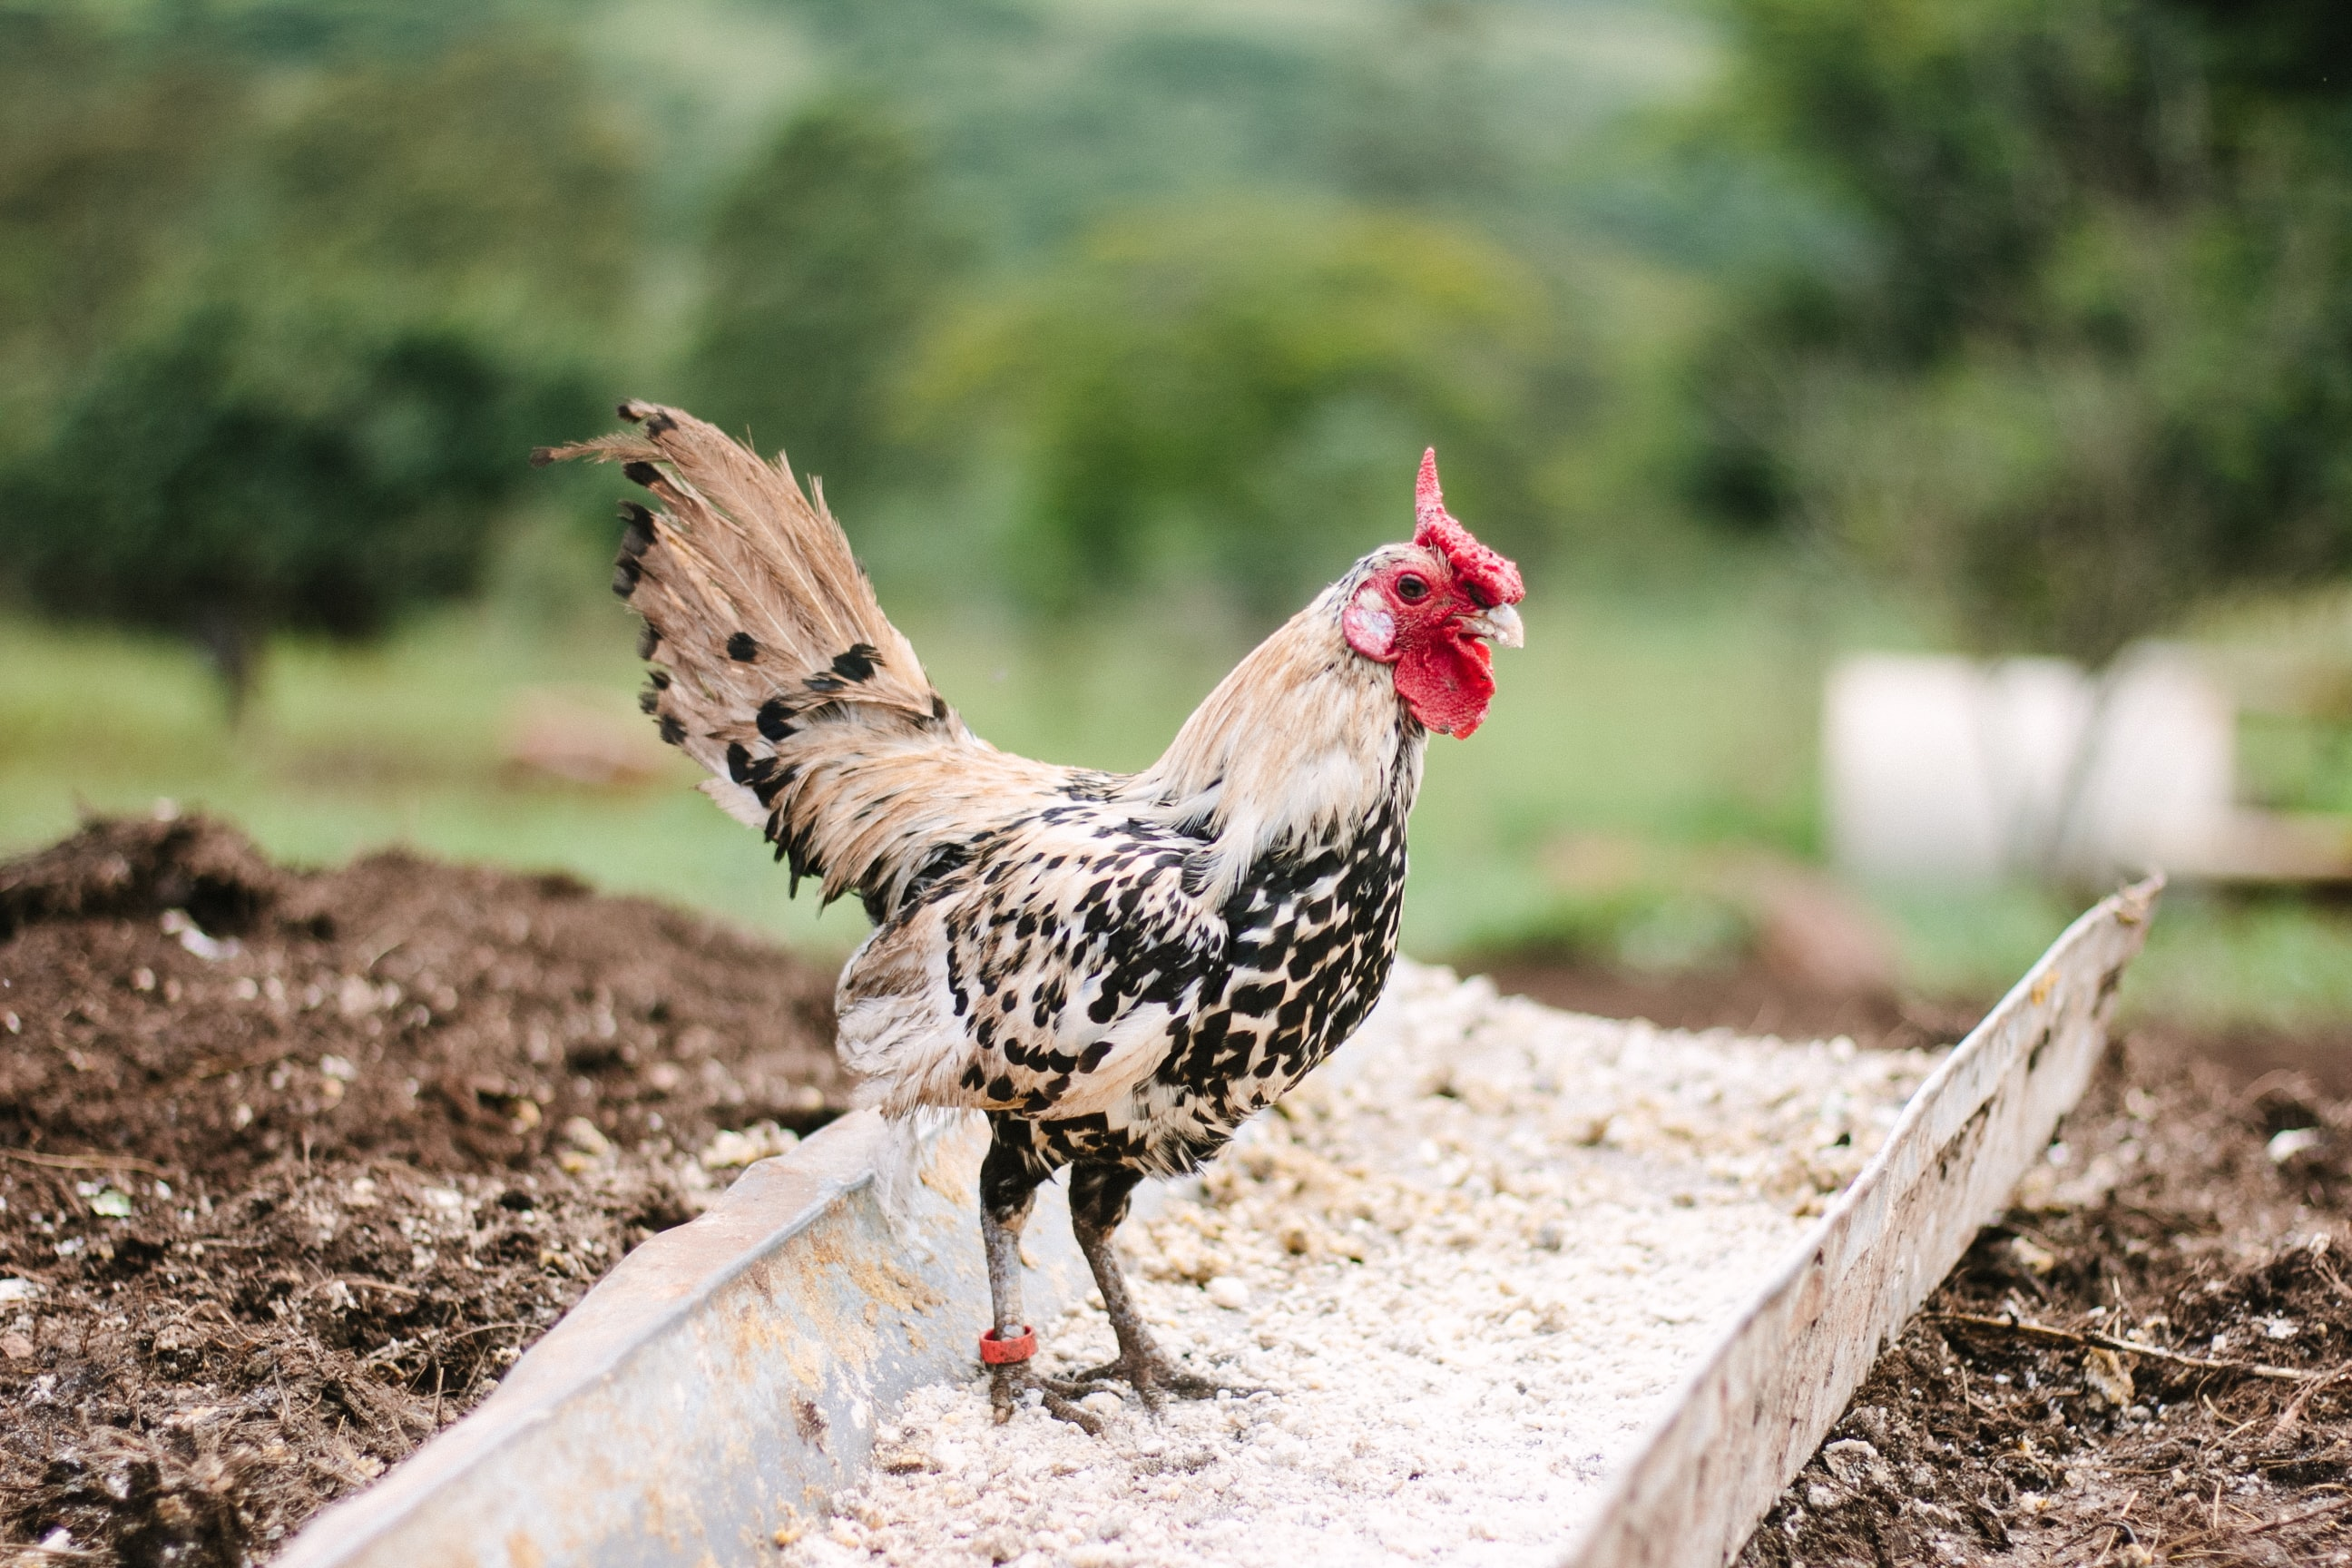 Chicken struts through dirt and feed on the farm